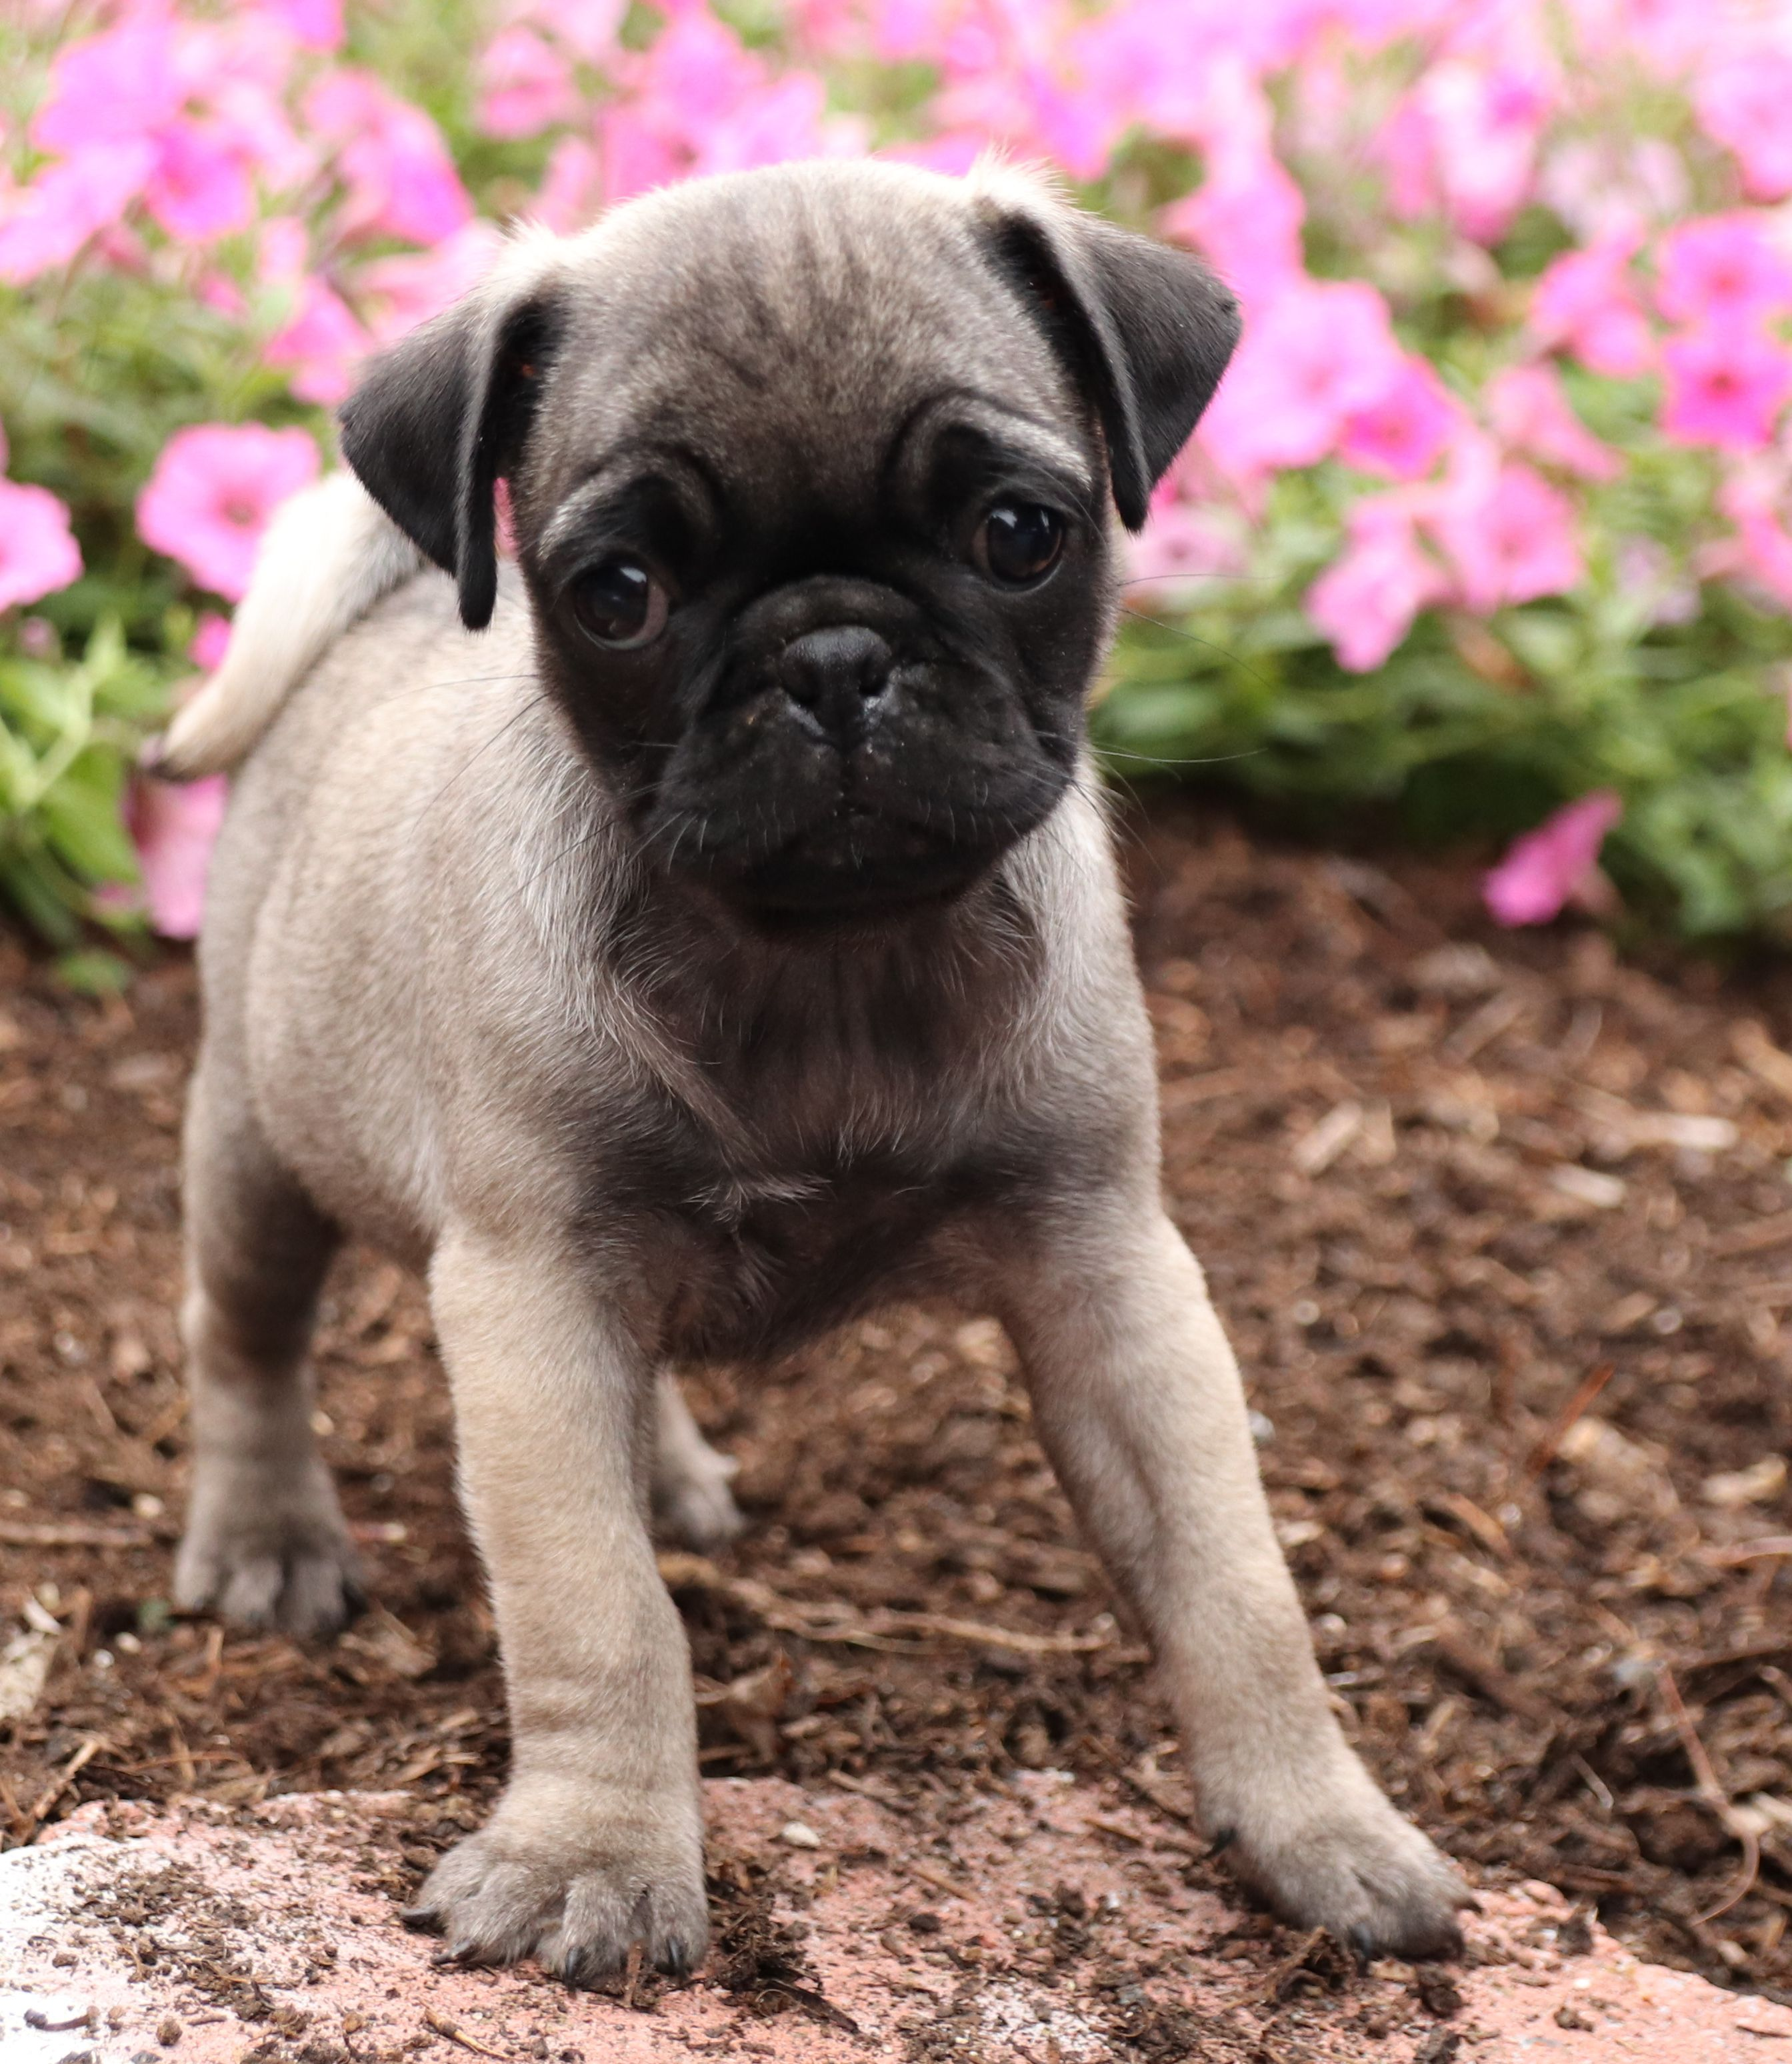 Puppies for Sale Puppies, Pug breeders, Pug puppies